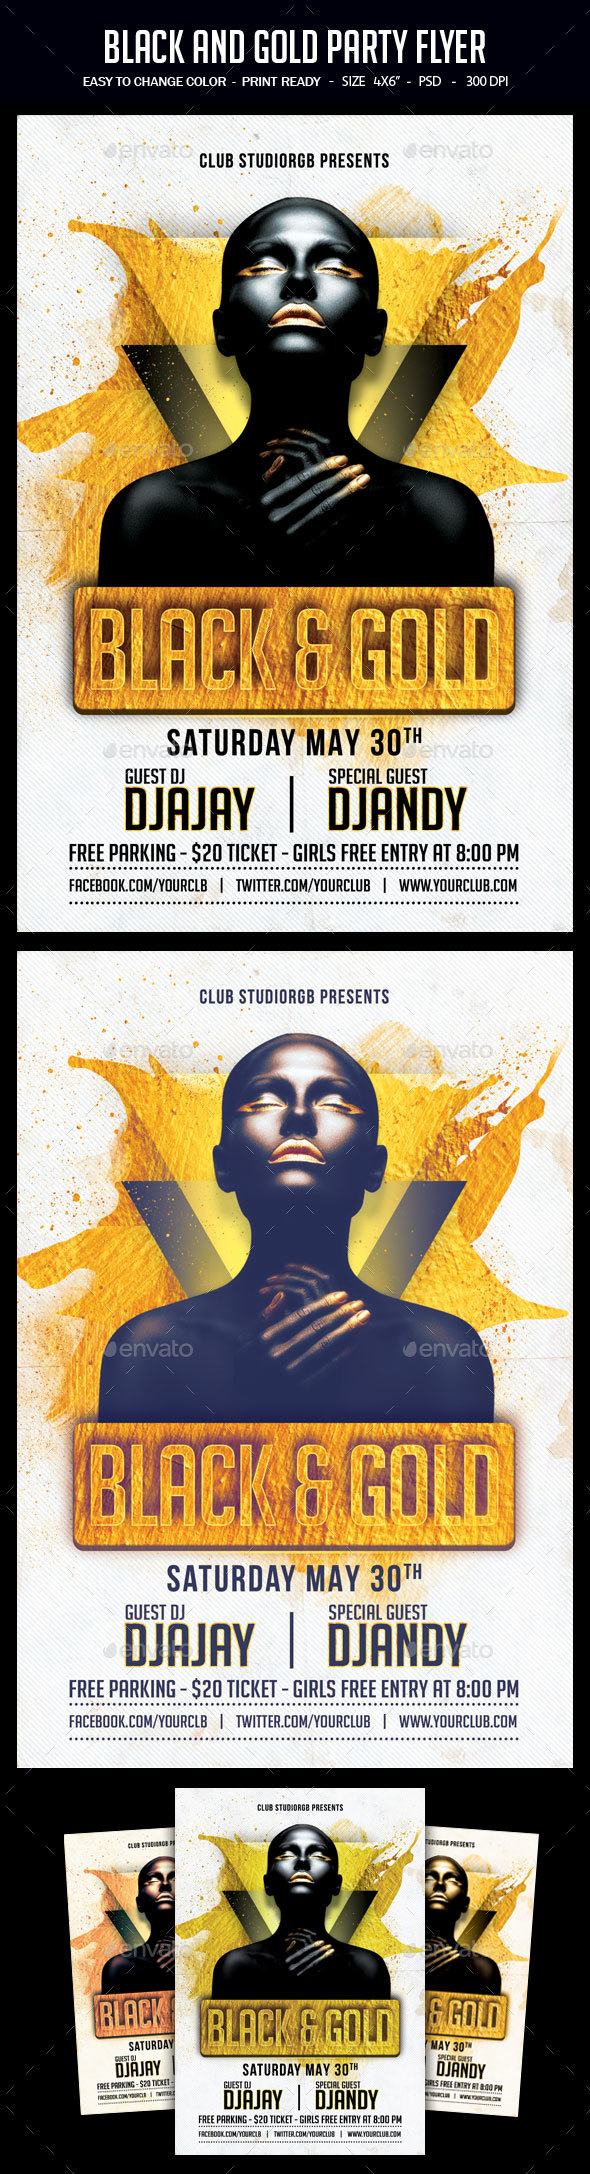 Black And Gold Party Flyer - Clubs & Parties Events